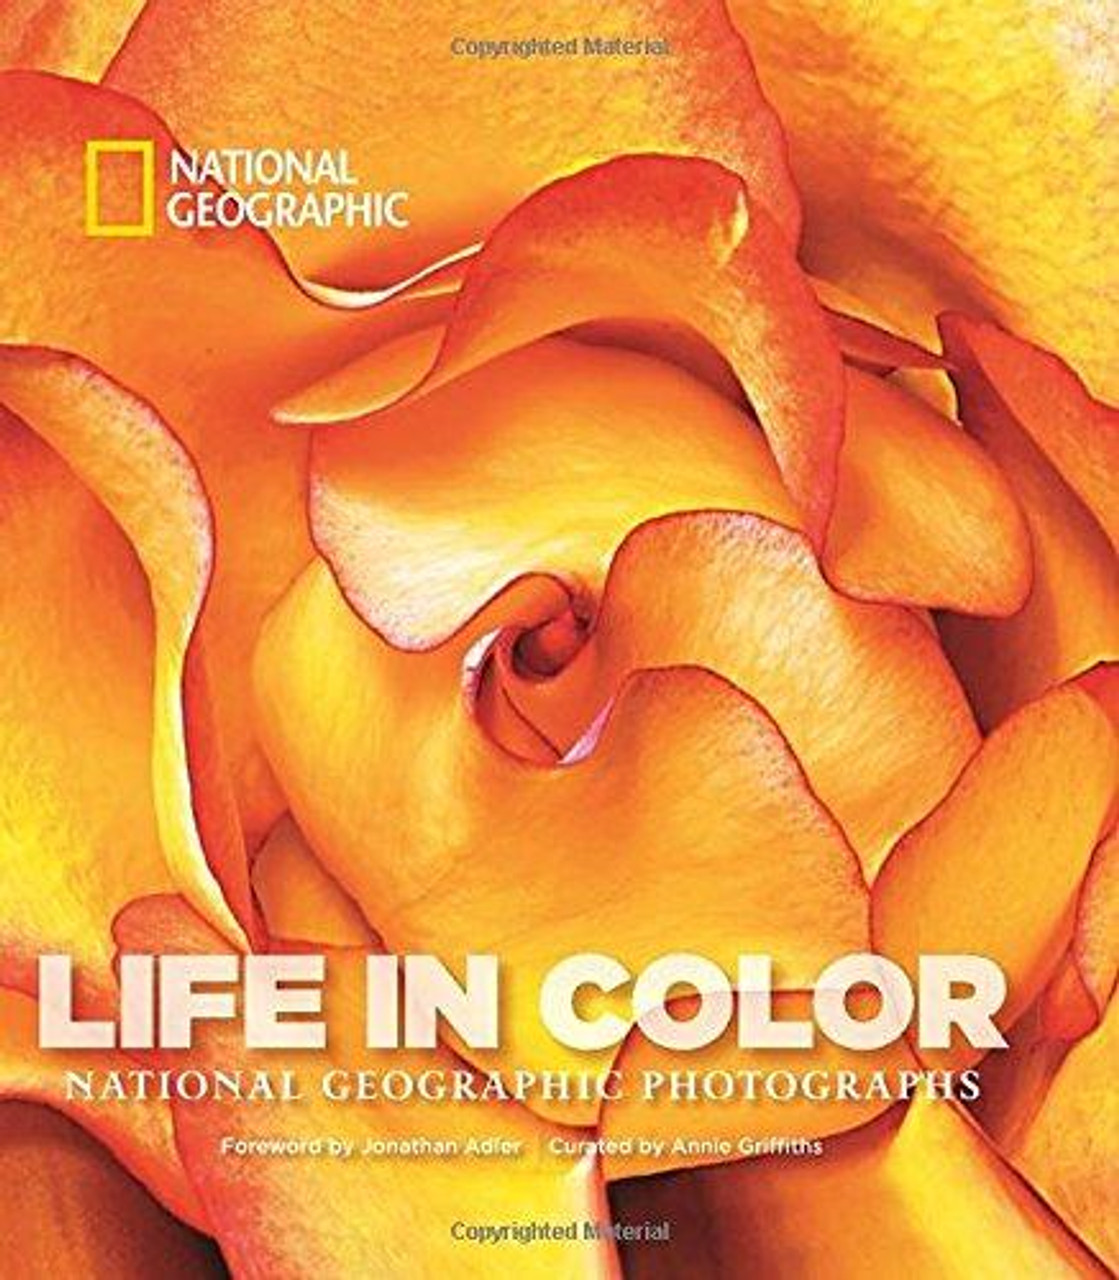 National Geographic Life in Color, A Small Coffee Table Book ...